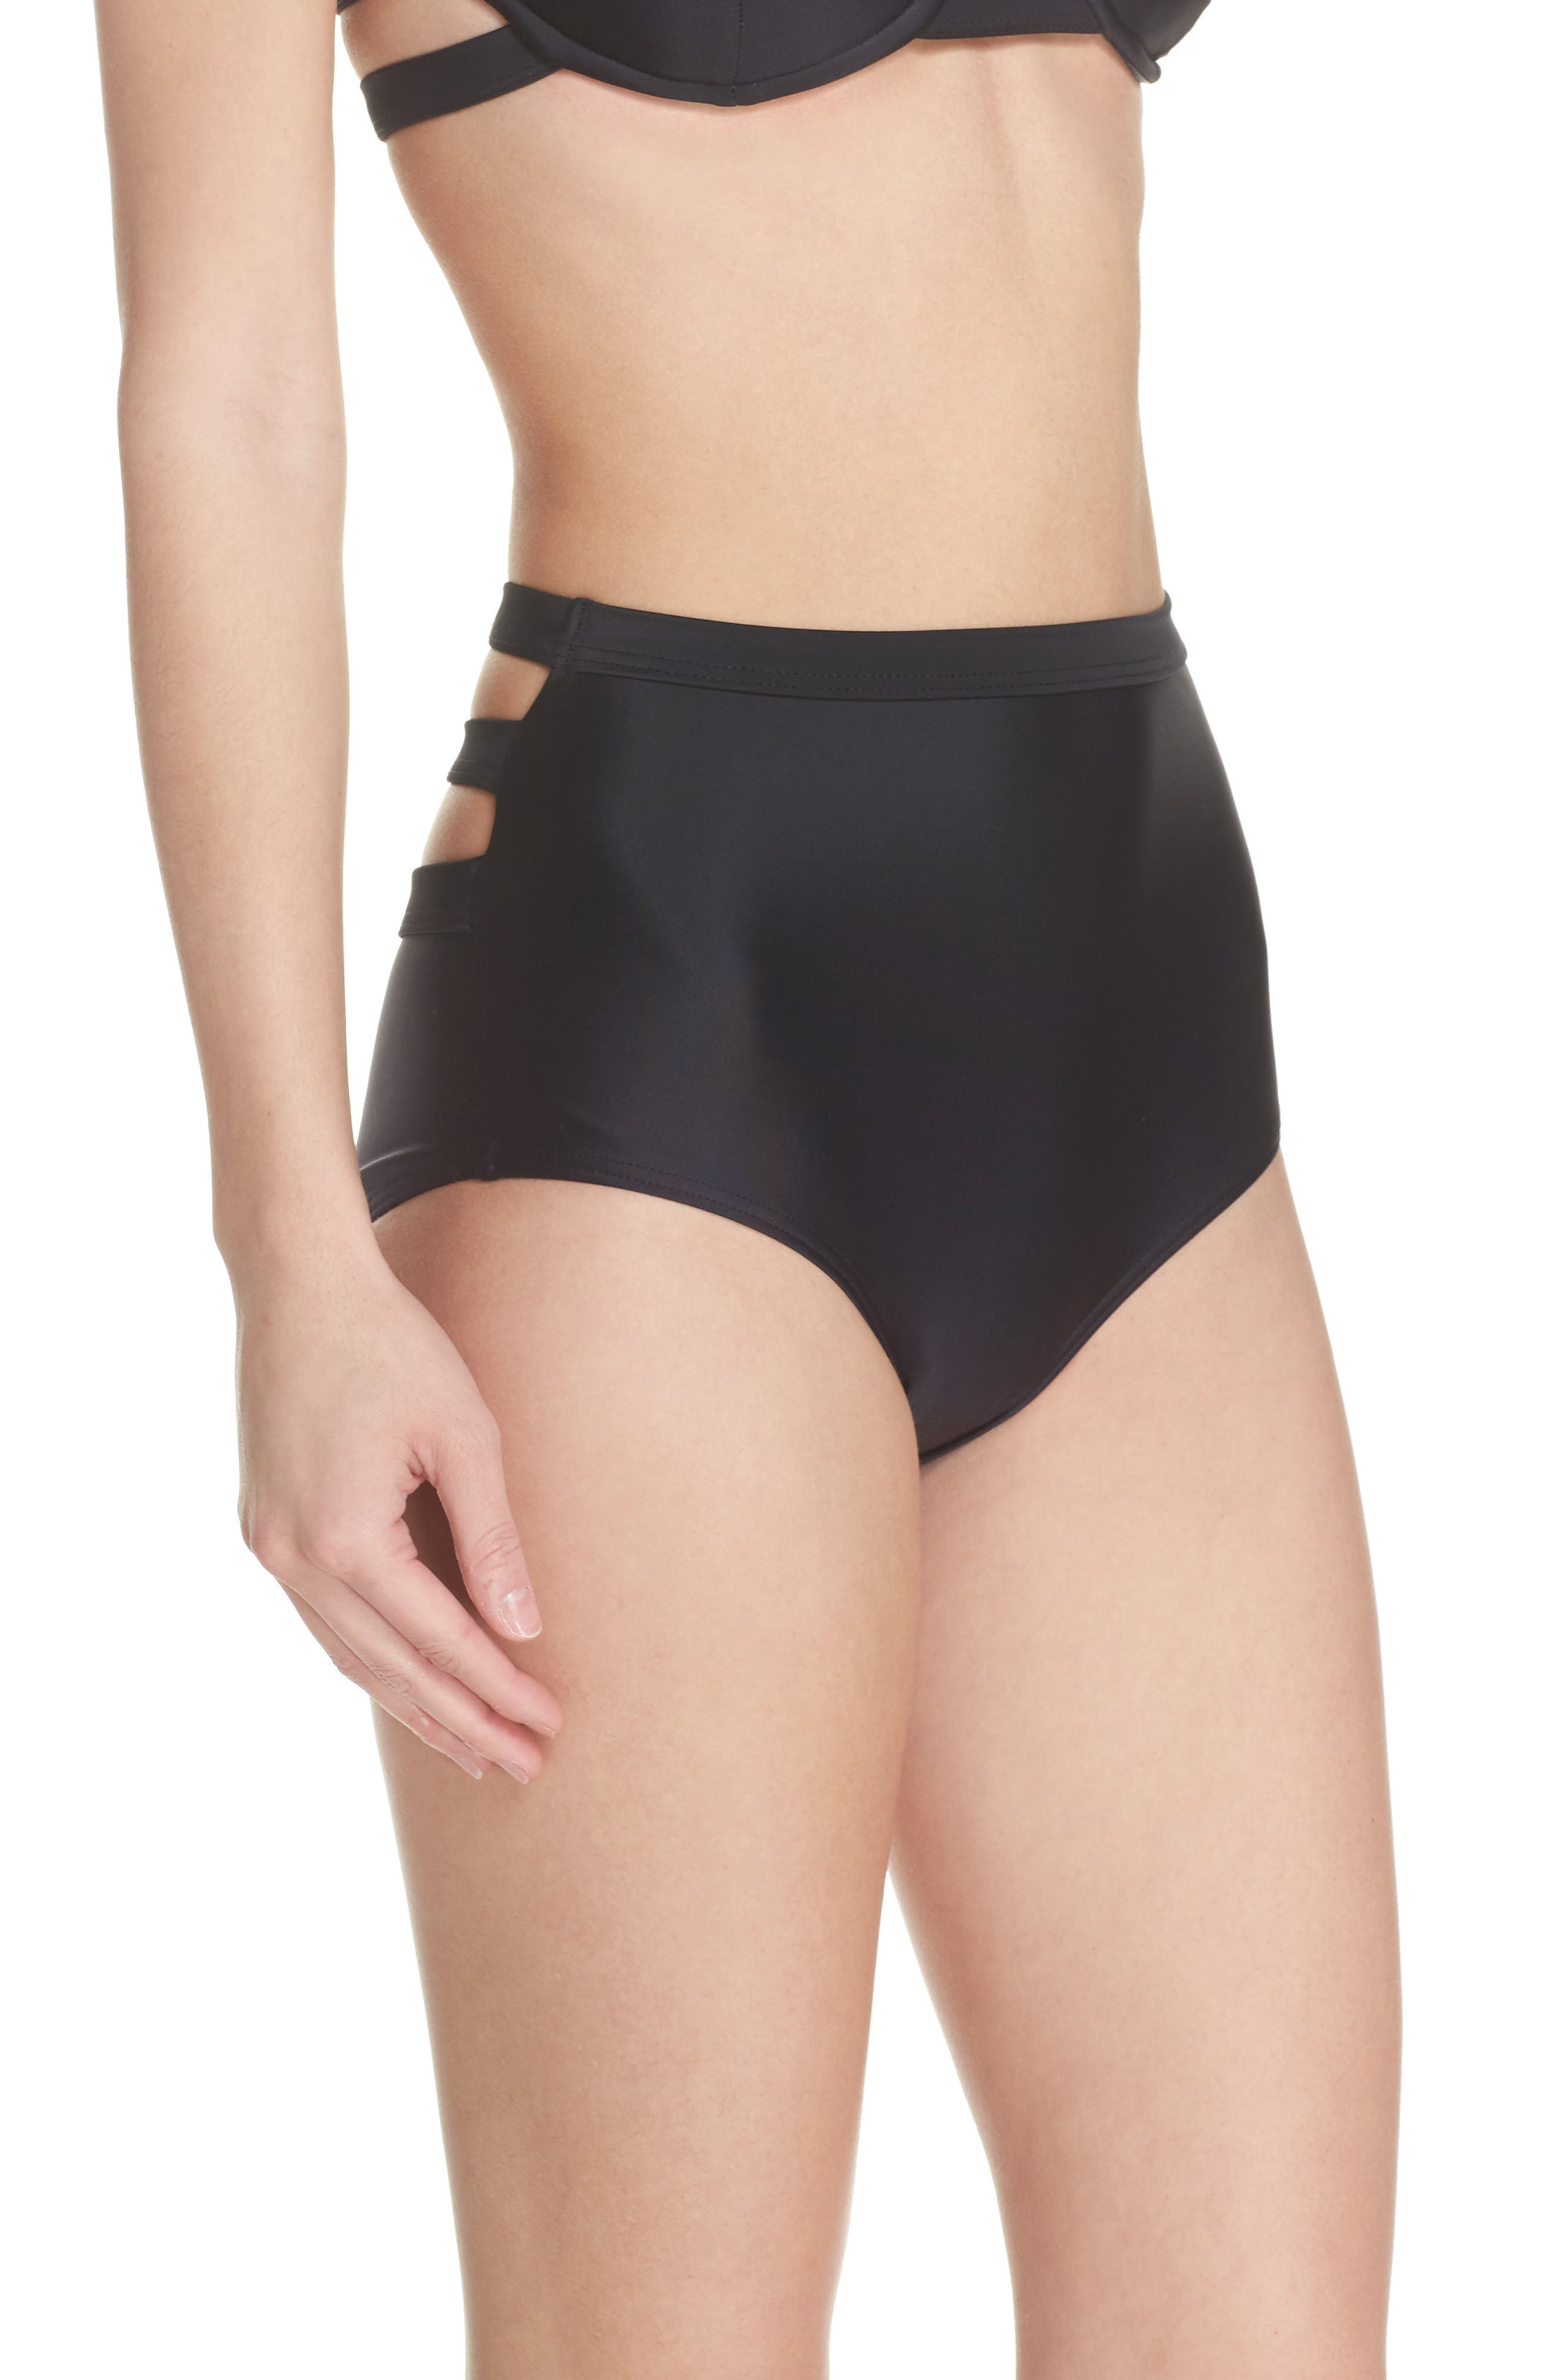 Bouloux II High Waist Bikini Bottoms,                             Alternate thumbnail 4, color,                             Black